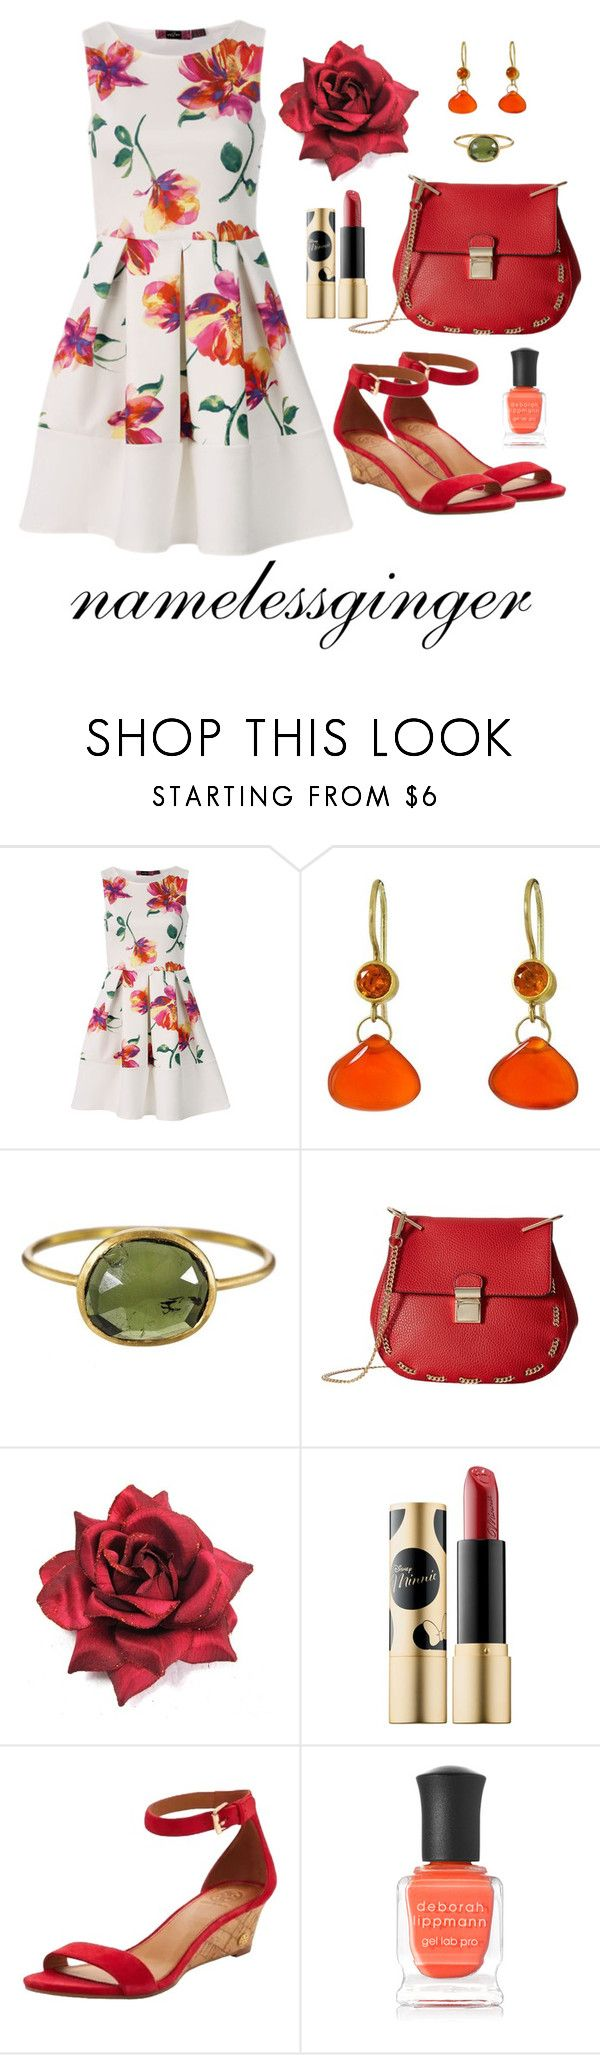 """untitled #580"" by namelessginger ❤ liked on Polyvore featuring Mallary Marks, Solow, Gabriella Rocha, Sephora Collection, Tory Burch and Deborah Lippmann"